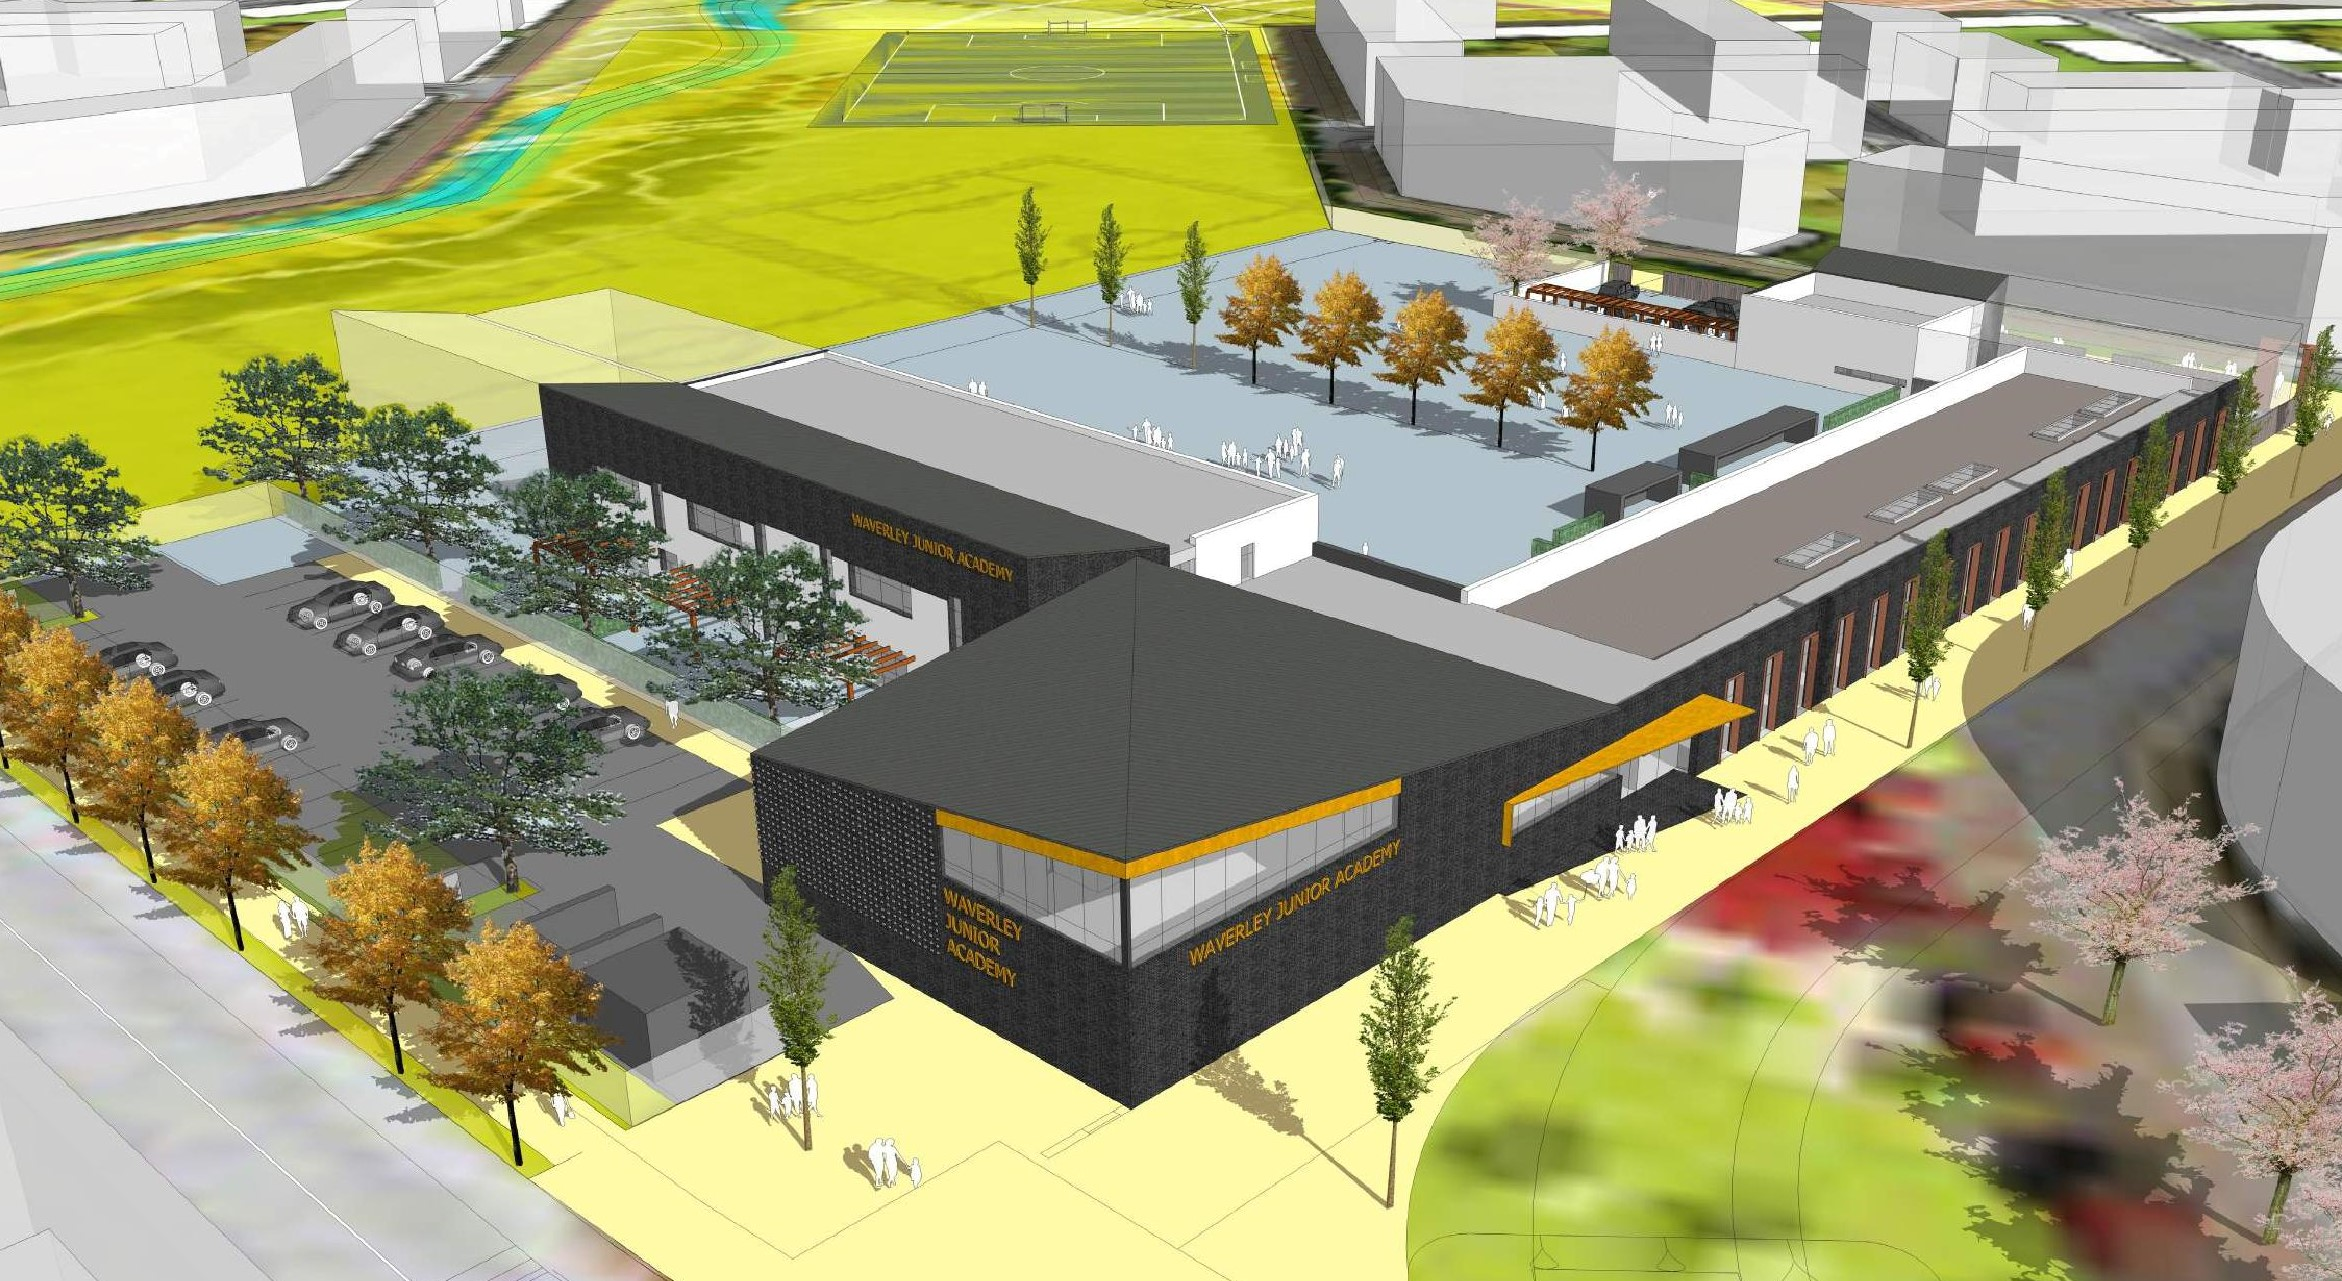 Rotherham Metropolitan Borough Council's planning board has officially approved plans for Waverley Juniors Academy. Penguin PR: public relations, media and communications